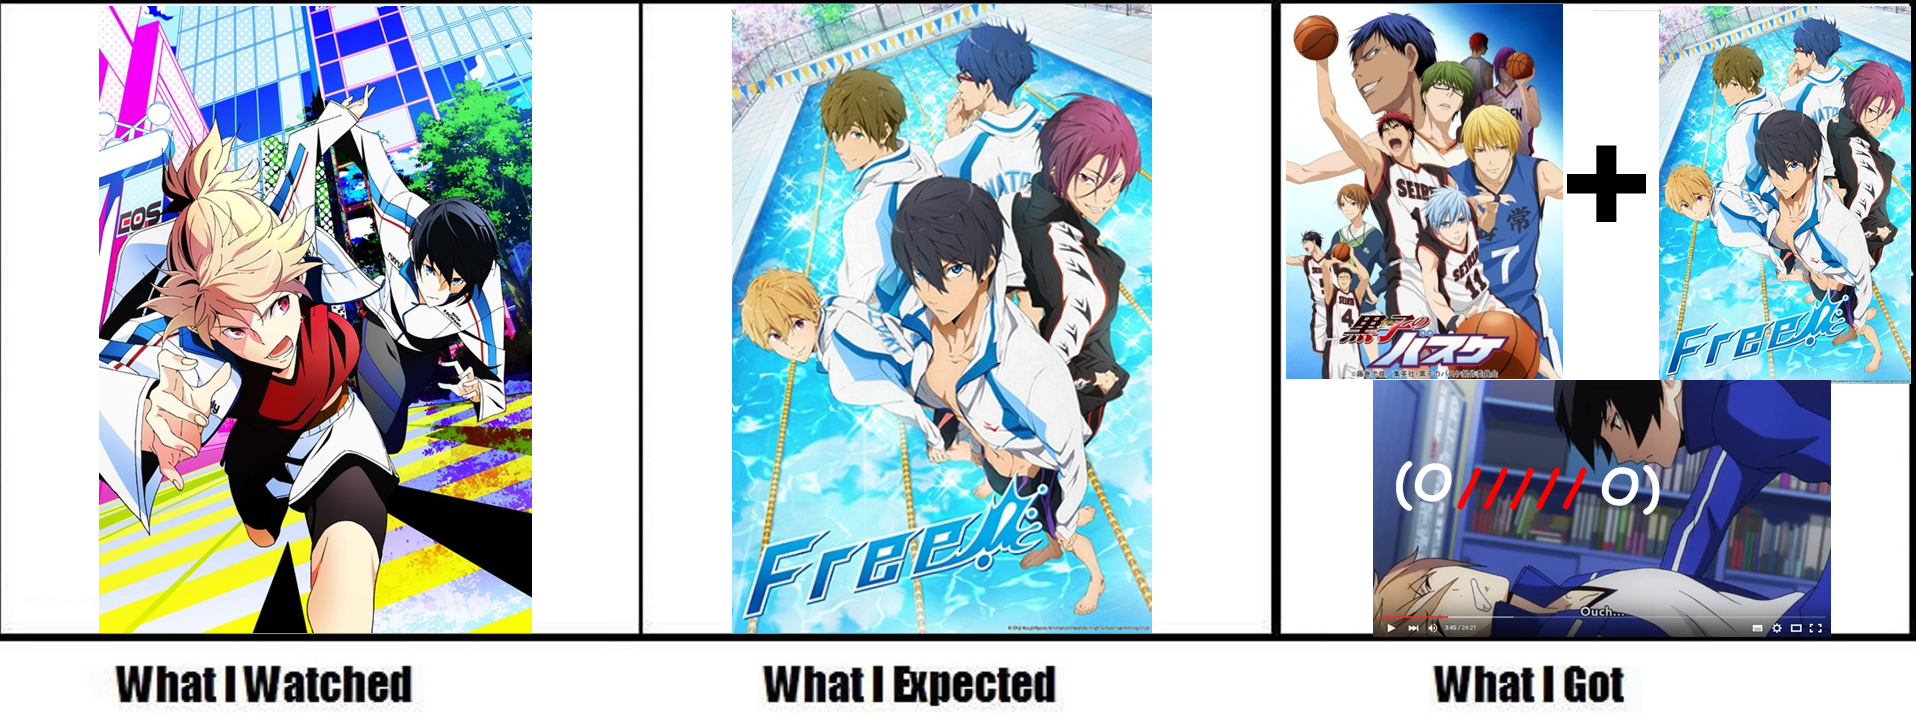 Prince of Stride expectation chart (c) to me